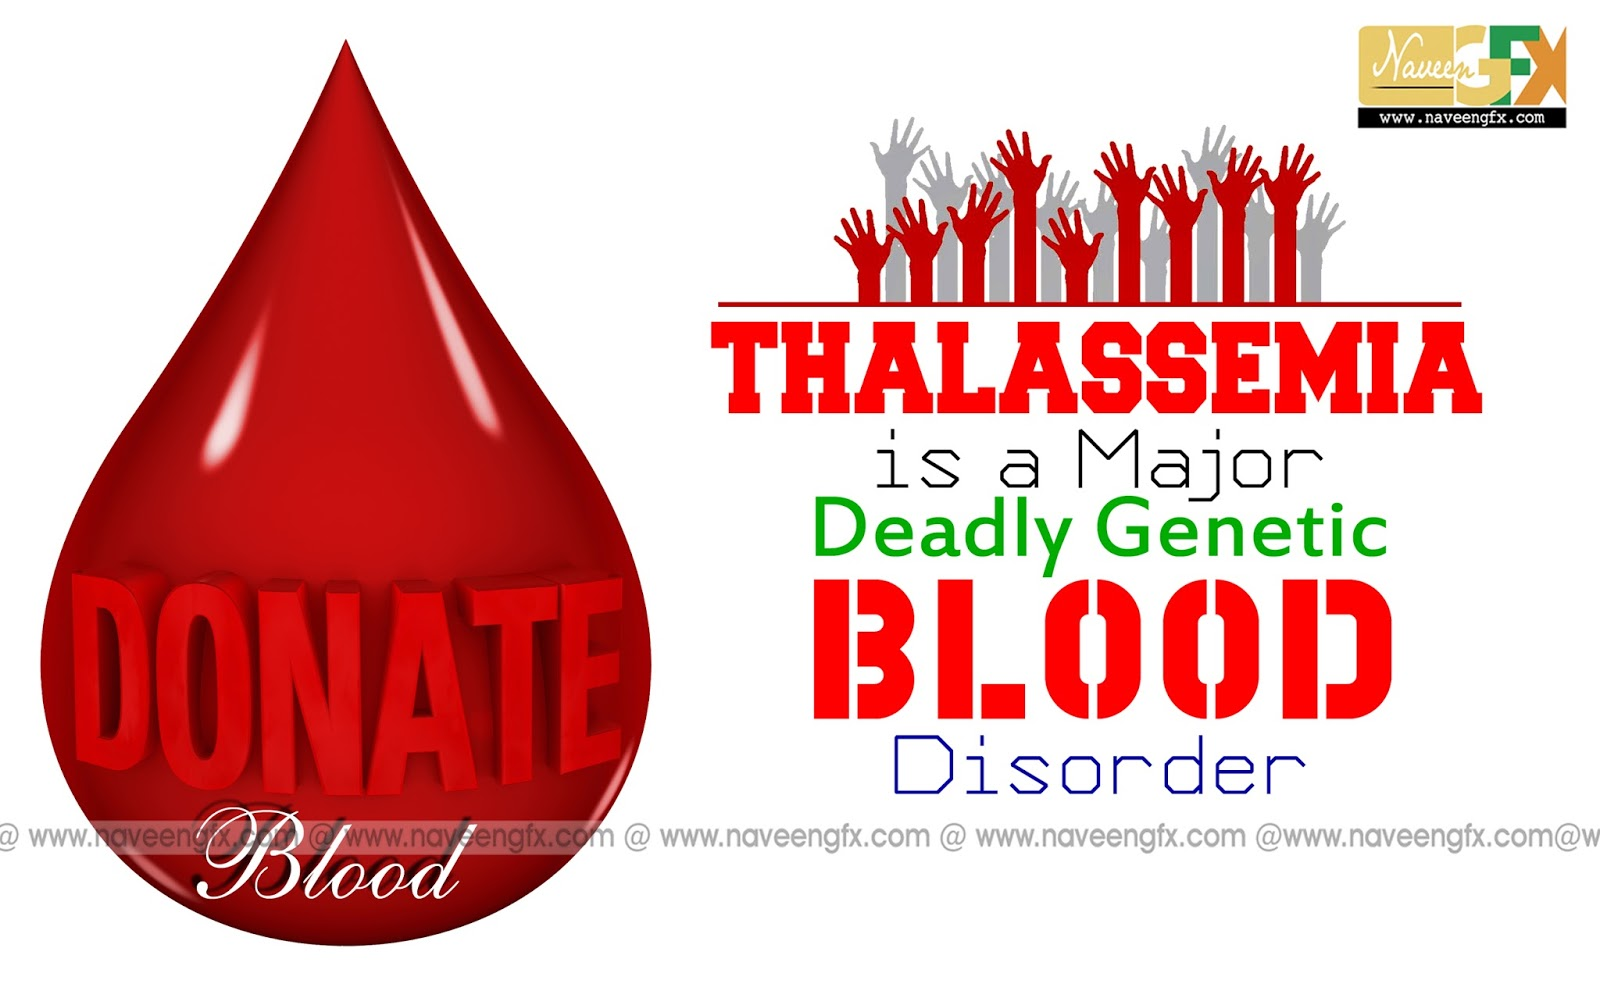 Slogans and posters of blood donation for thalassemia kids naveengfx donate blood for thalassemia hd posters and slogans altavistaventures Choice Image